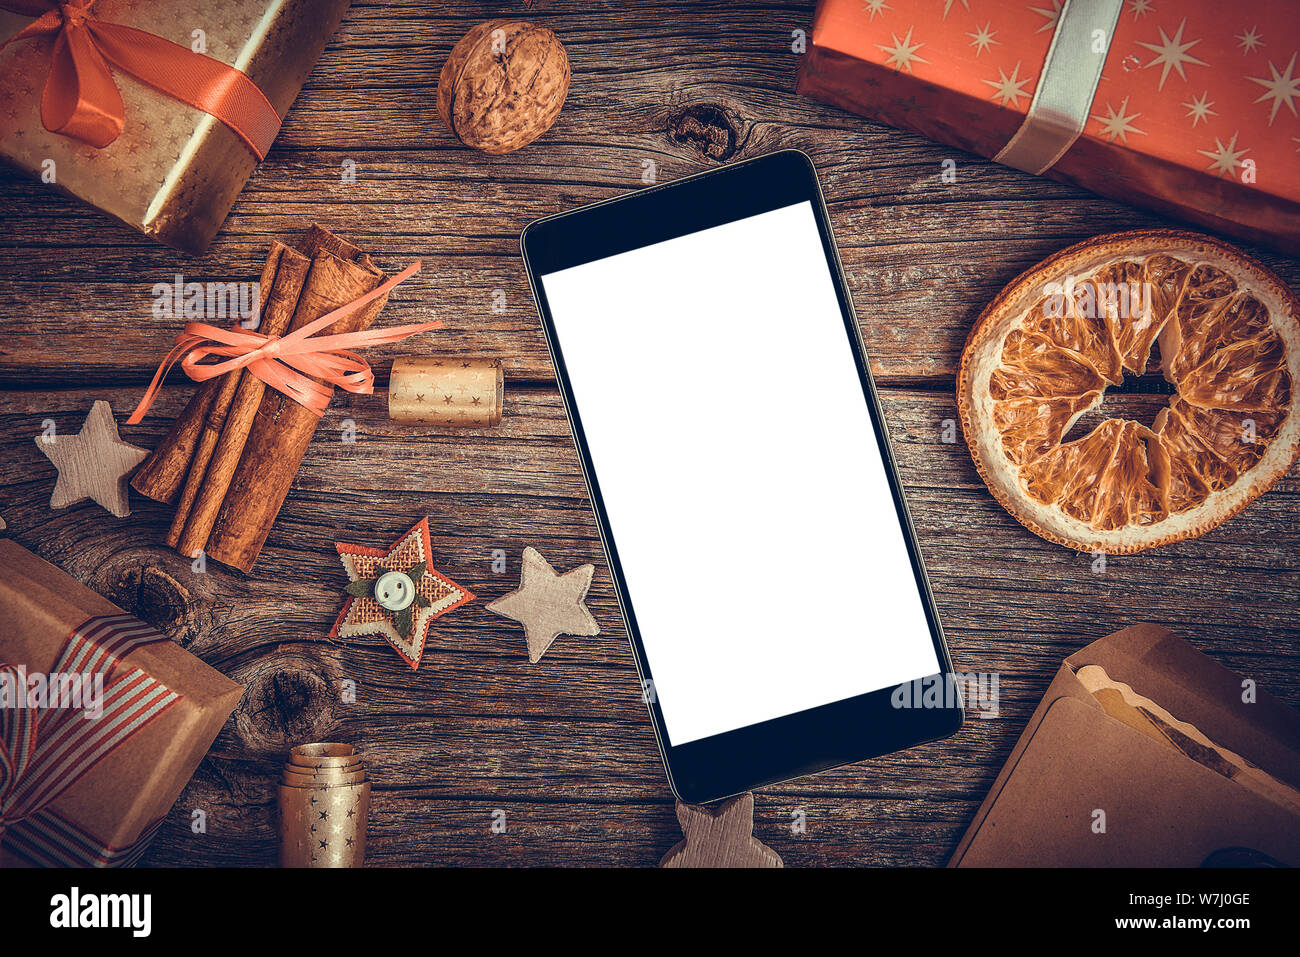 Smartphone on a wooden table with a variety of New Year winter decorations. Stock Photo